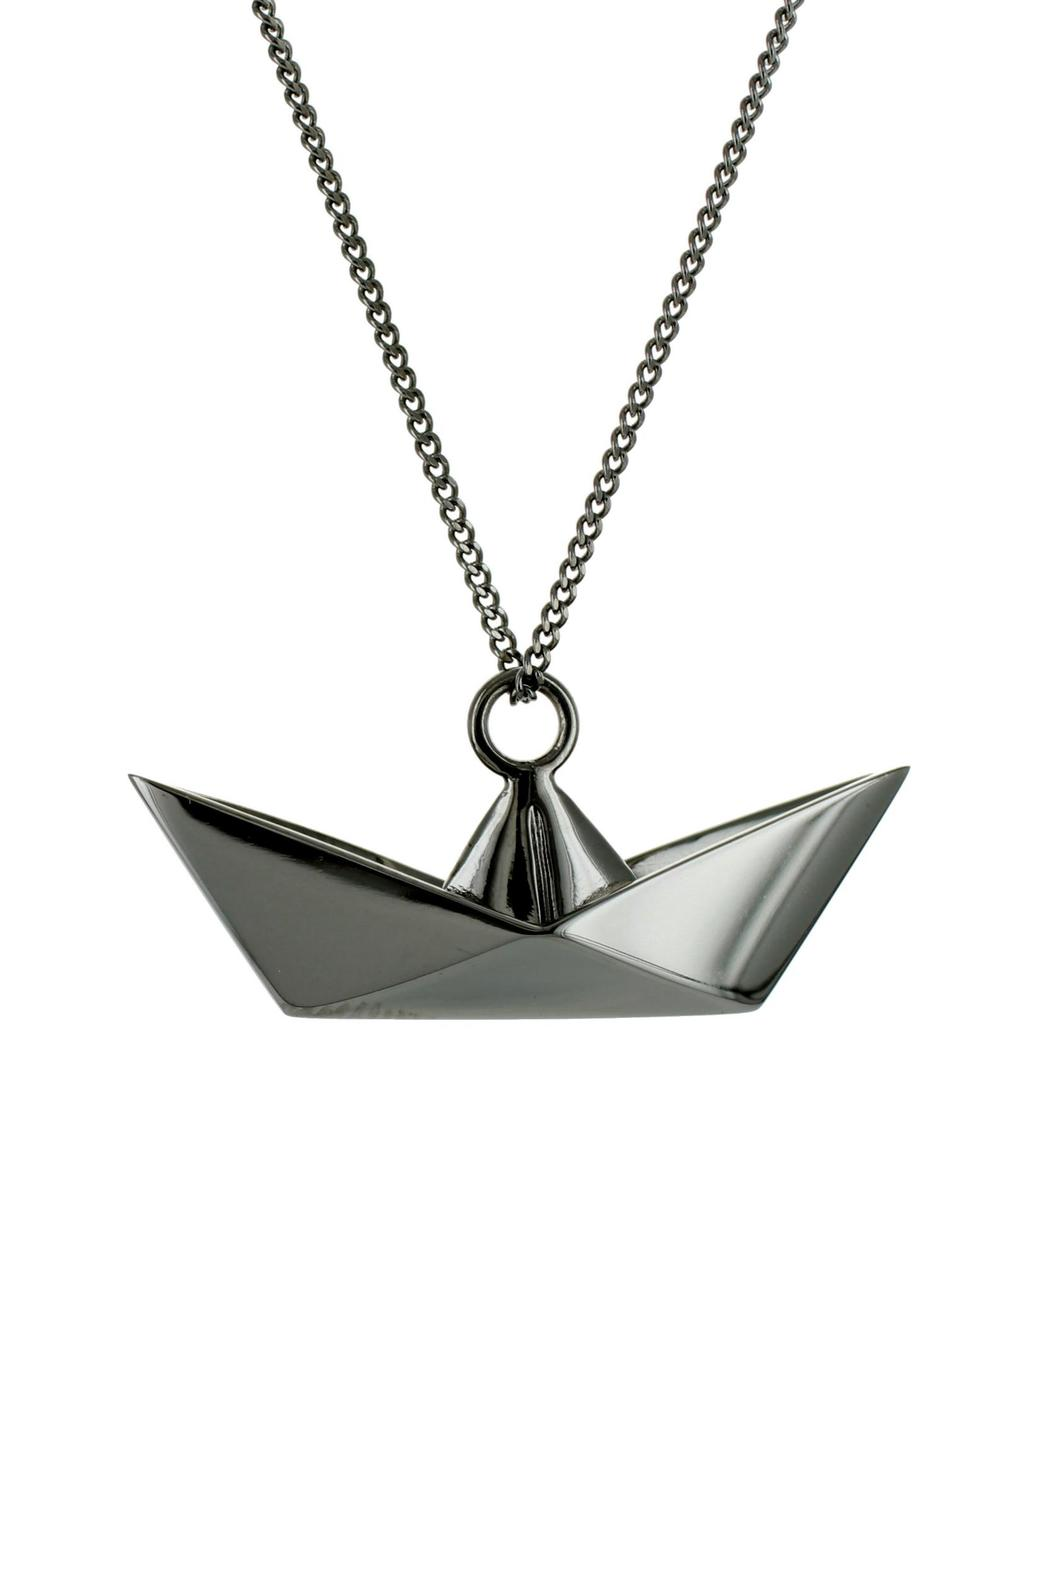 Origami Jewellery Necklace Boat Silver from Paris by